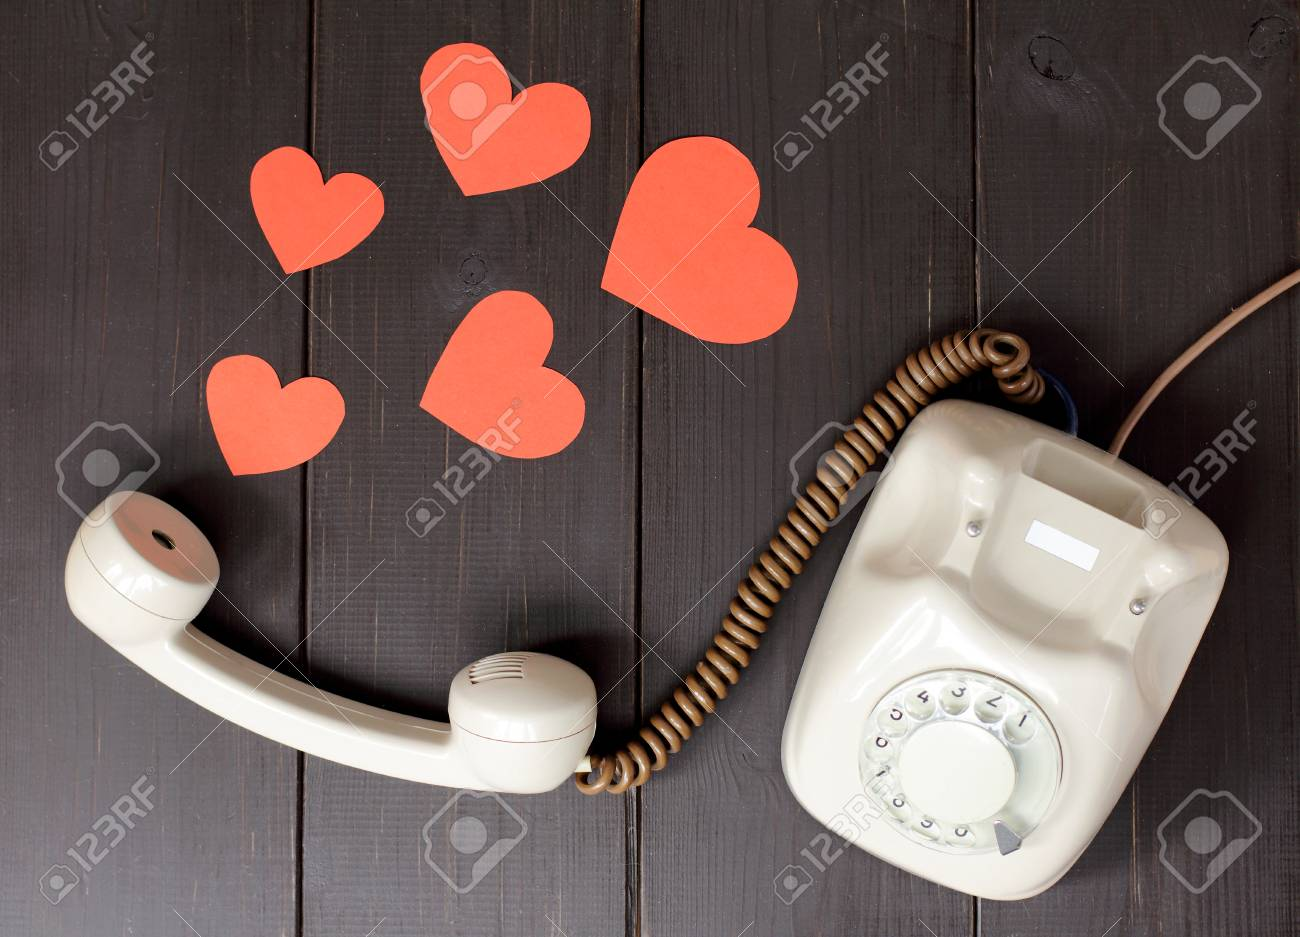 idea attractive voice in the form of hearts flying out of telephone handset lying on a wooden table / amorous talking by phone - 62150739